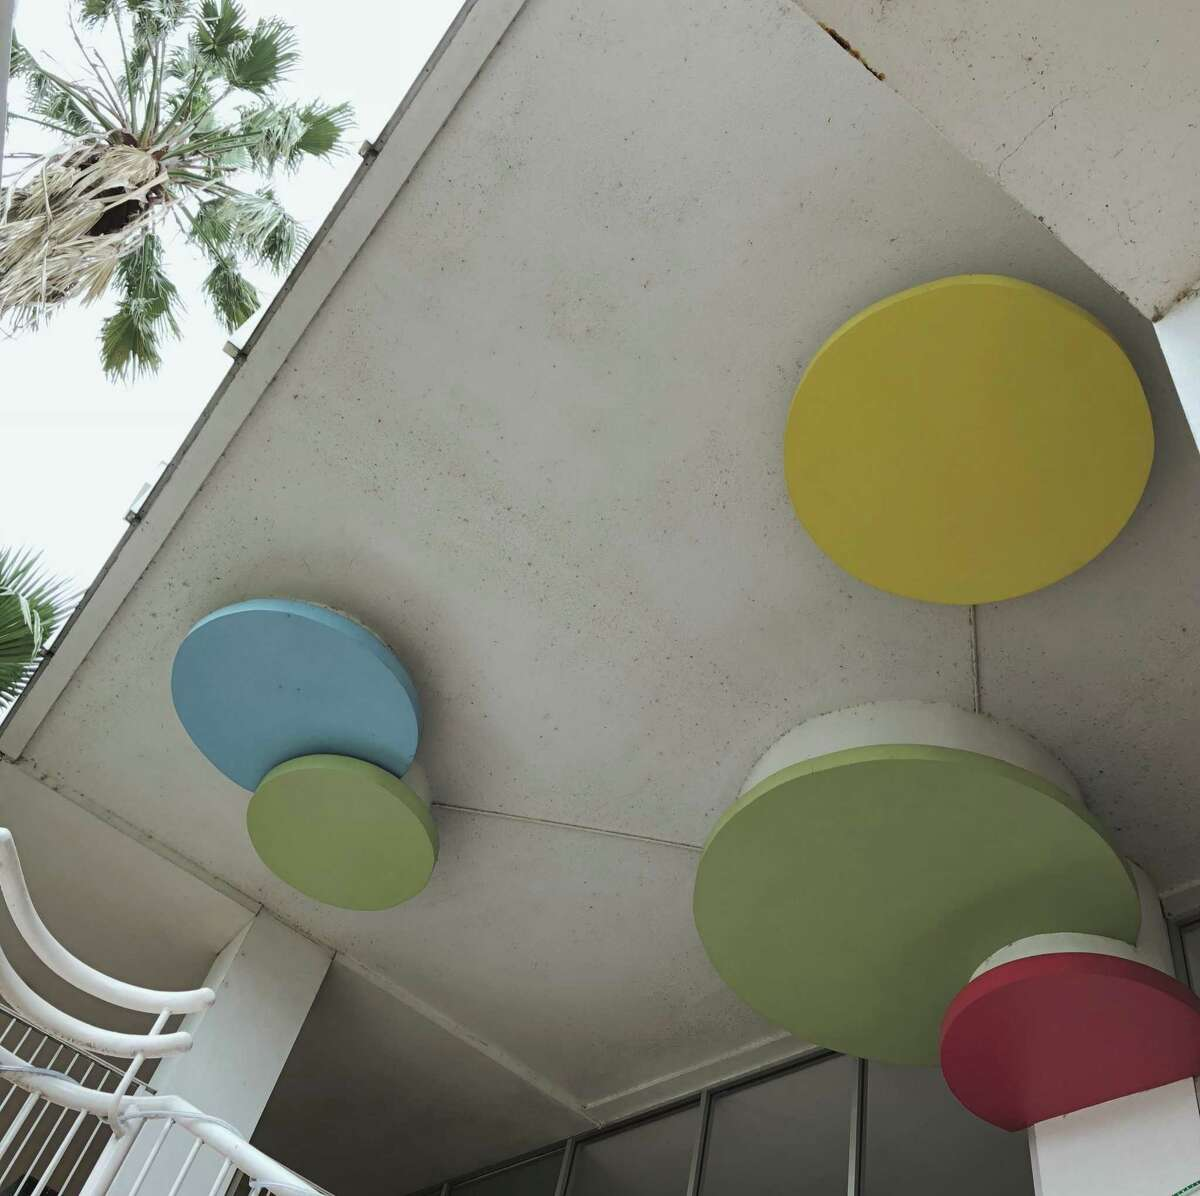 Pops of color are common design elements in mid-century modern architecture. Here's a look at the ceiling of El Tropicano Hotel on the River Walk.